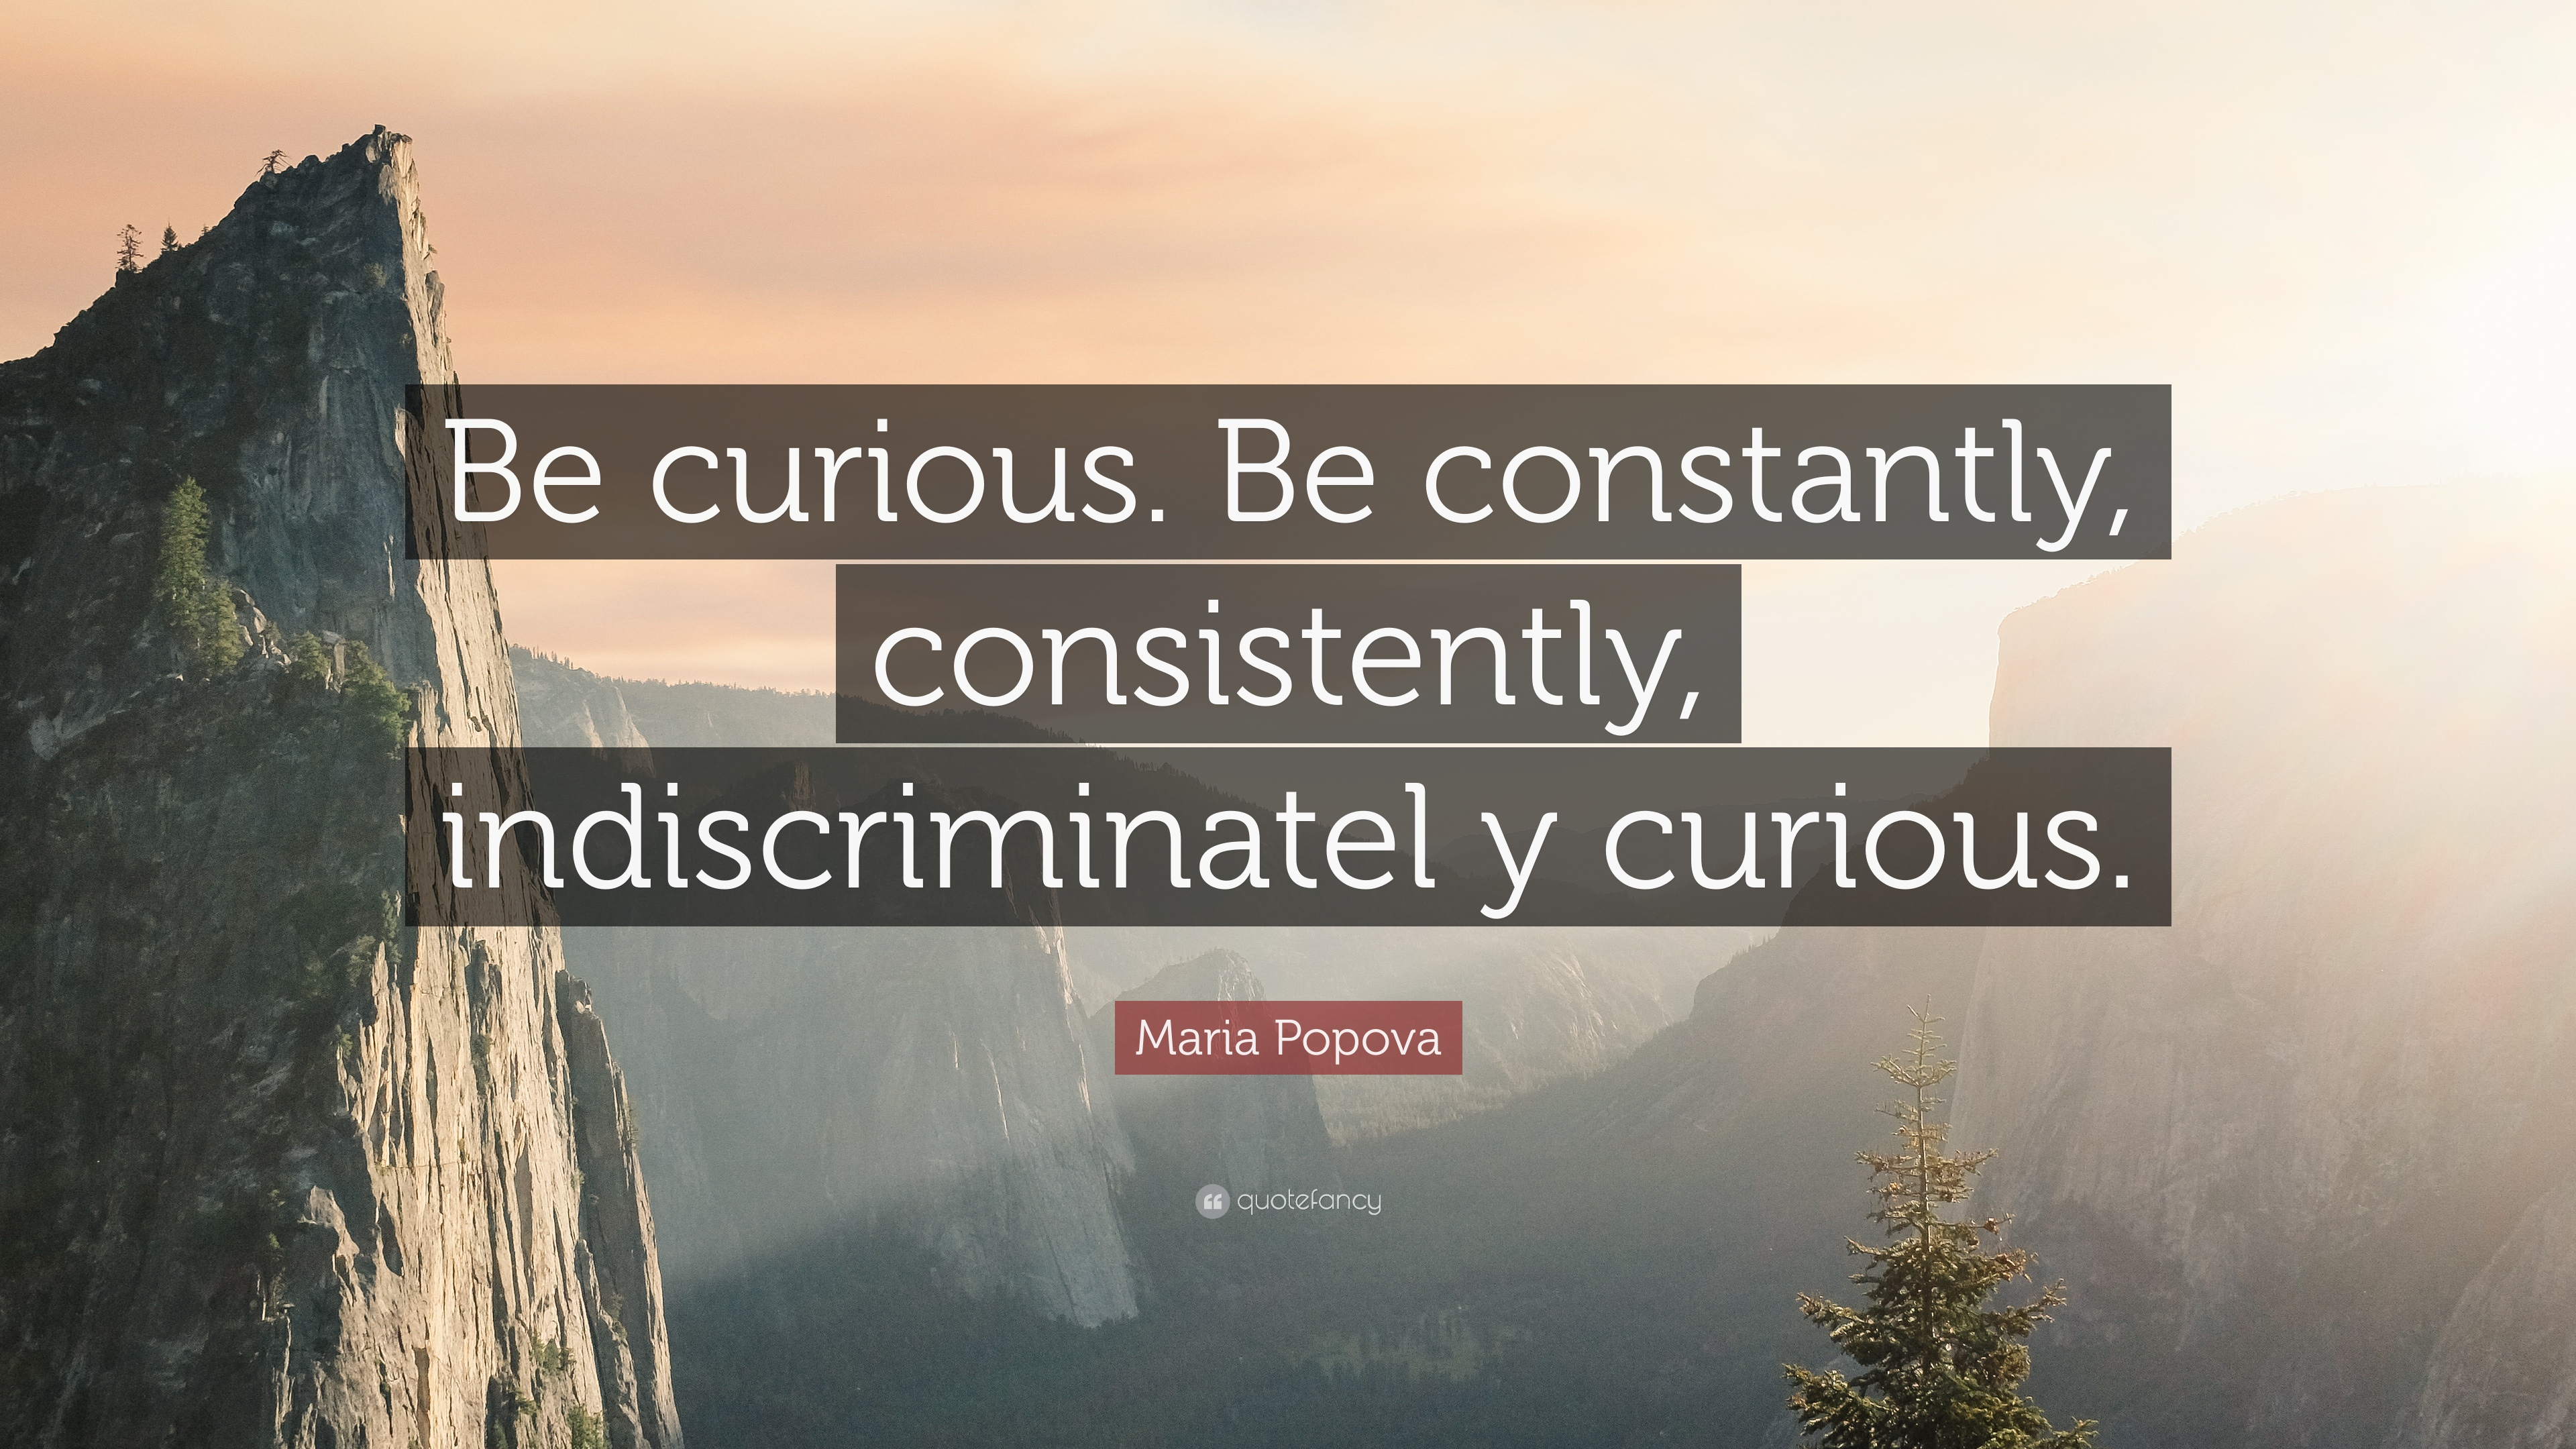 7 Wallpapers Maria Popova Quote Be Curious Constantly Consistently Indiscriminatel Y